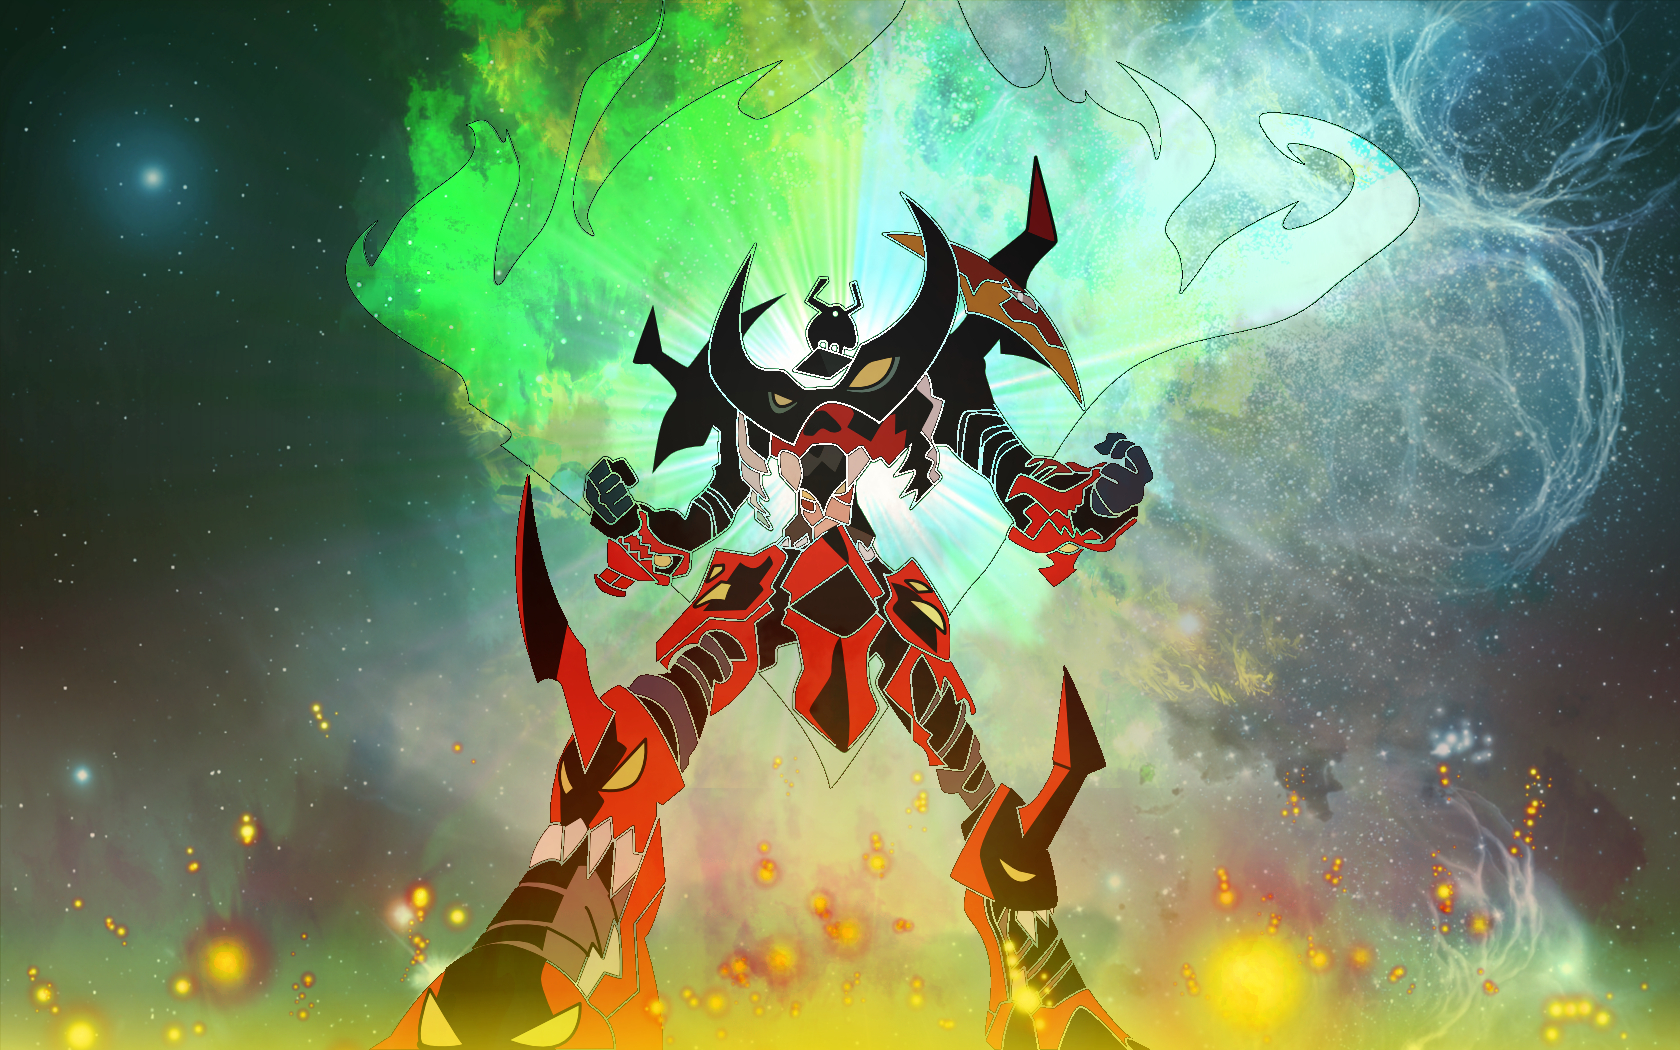 Gurren lagann hd wallpapers wallpapersafari - Gurren lagann wallpaper ...